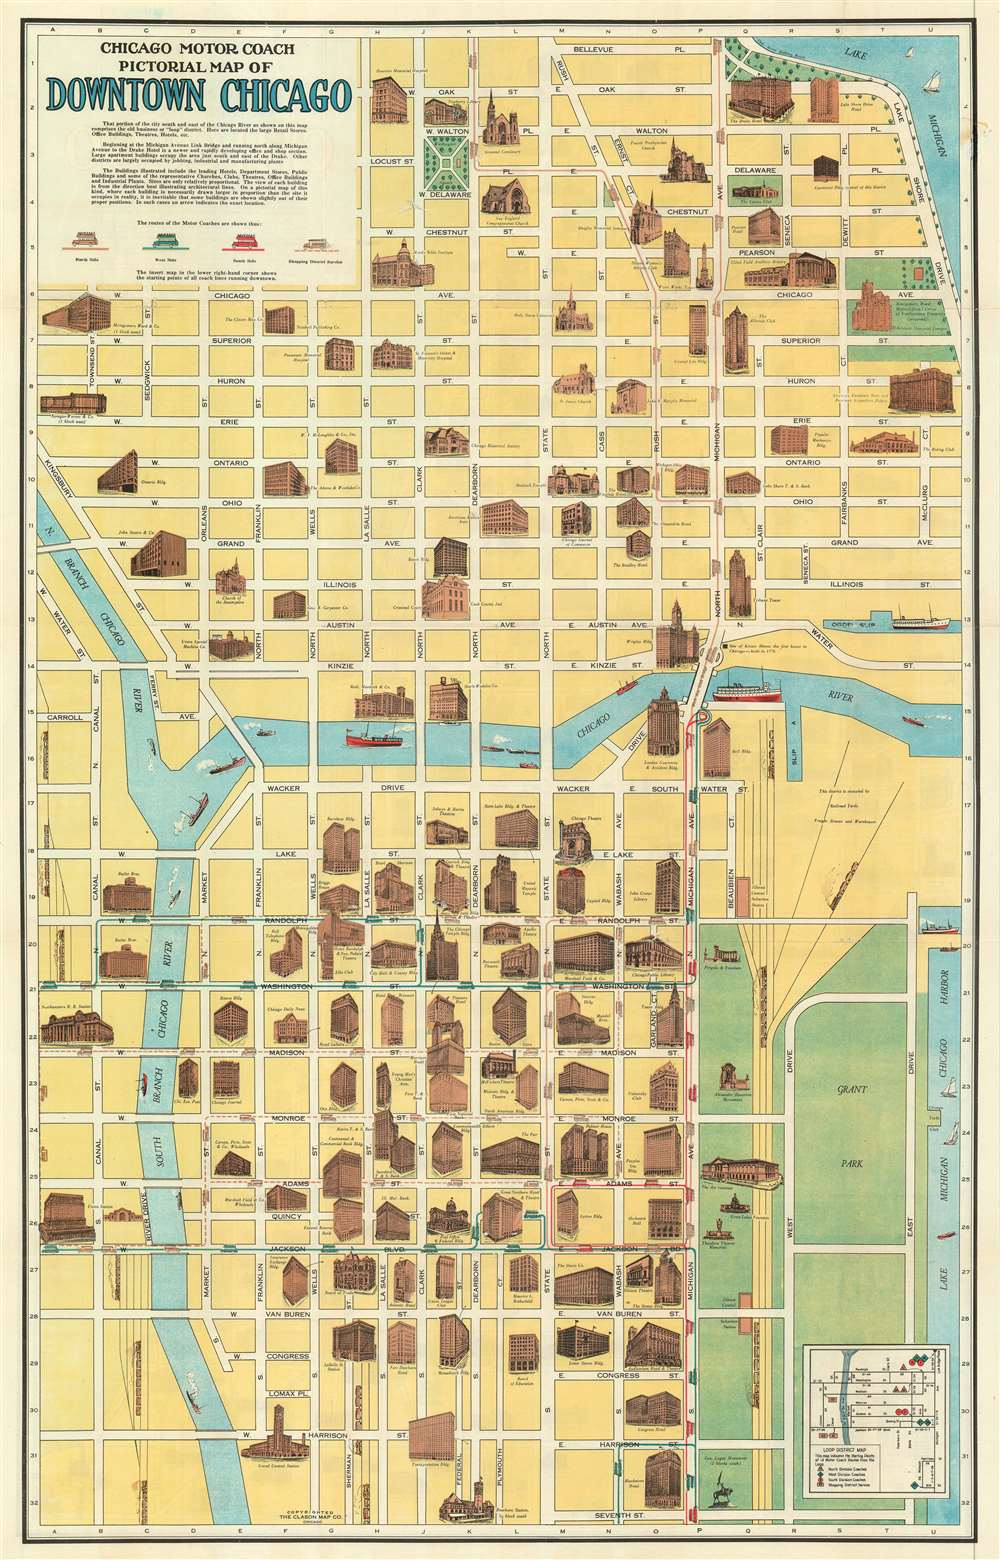 Chicago Motor Coach Pictorial Map of Downtown Chicago